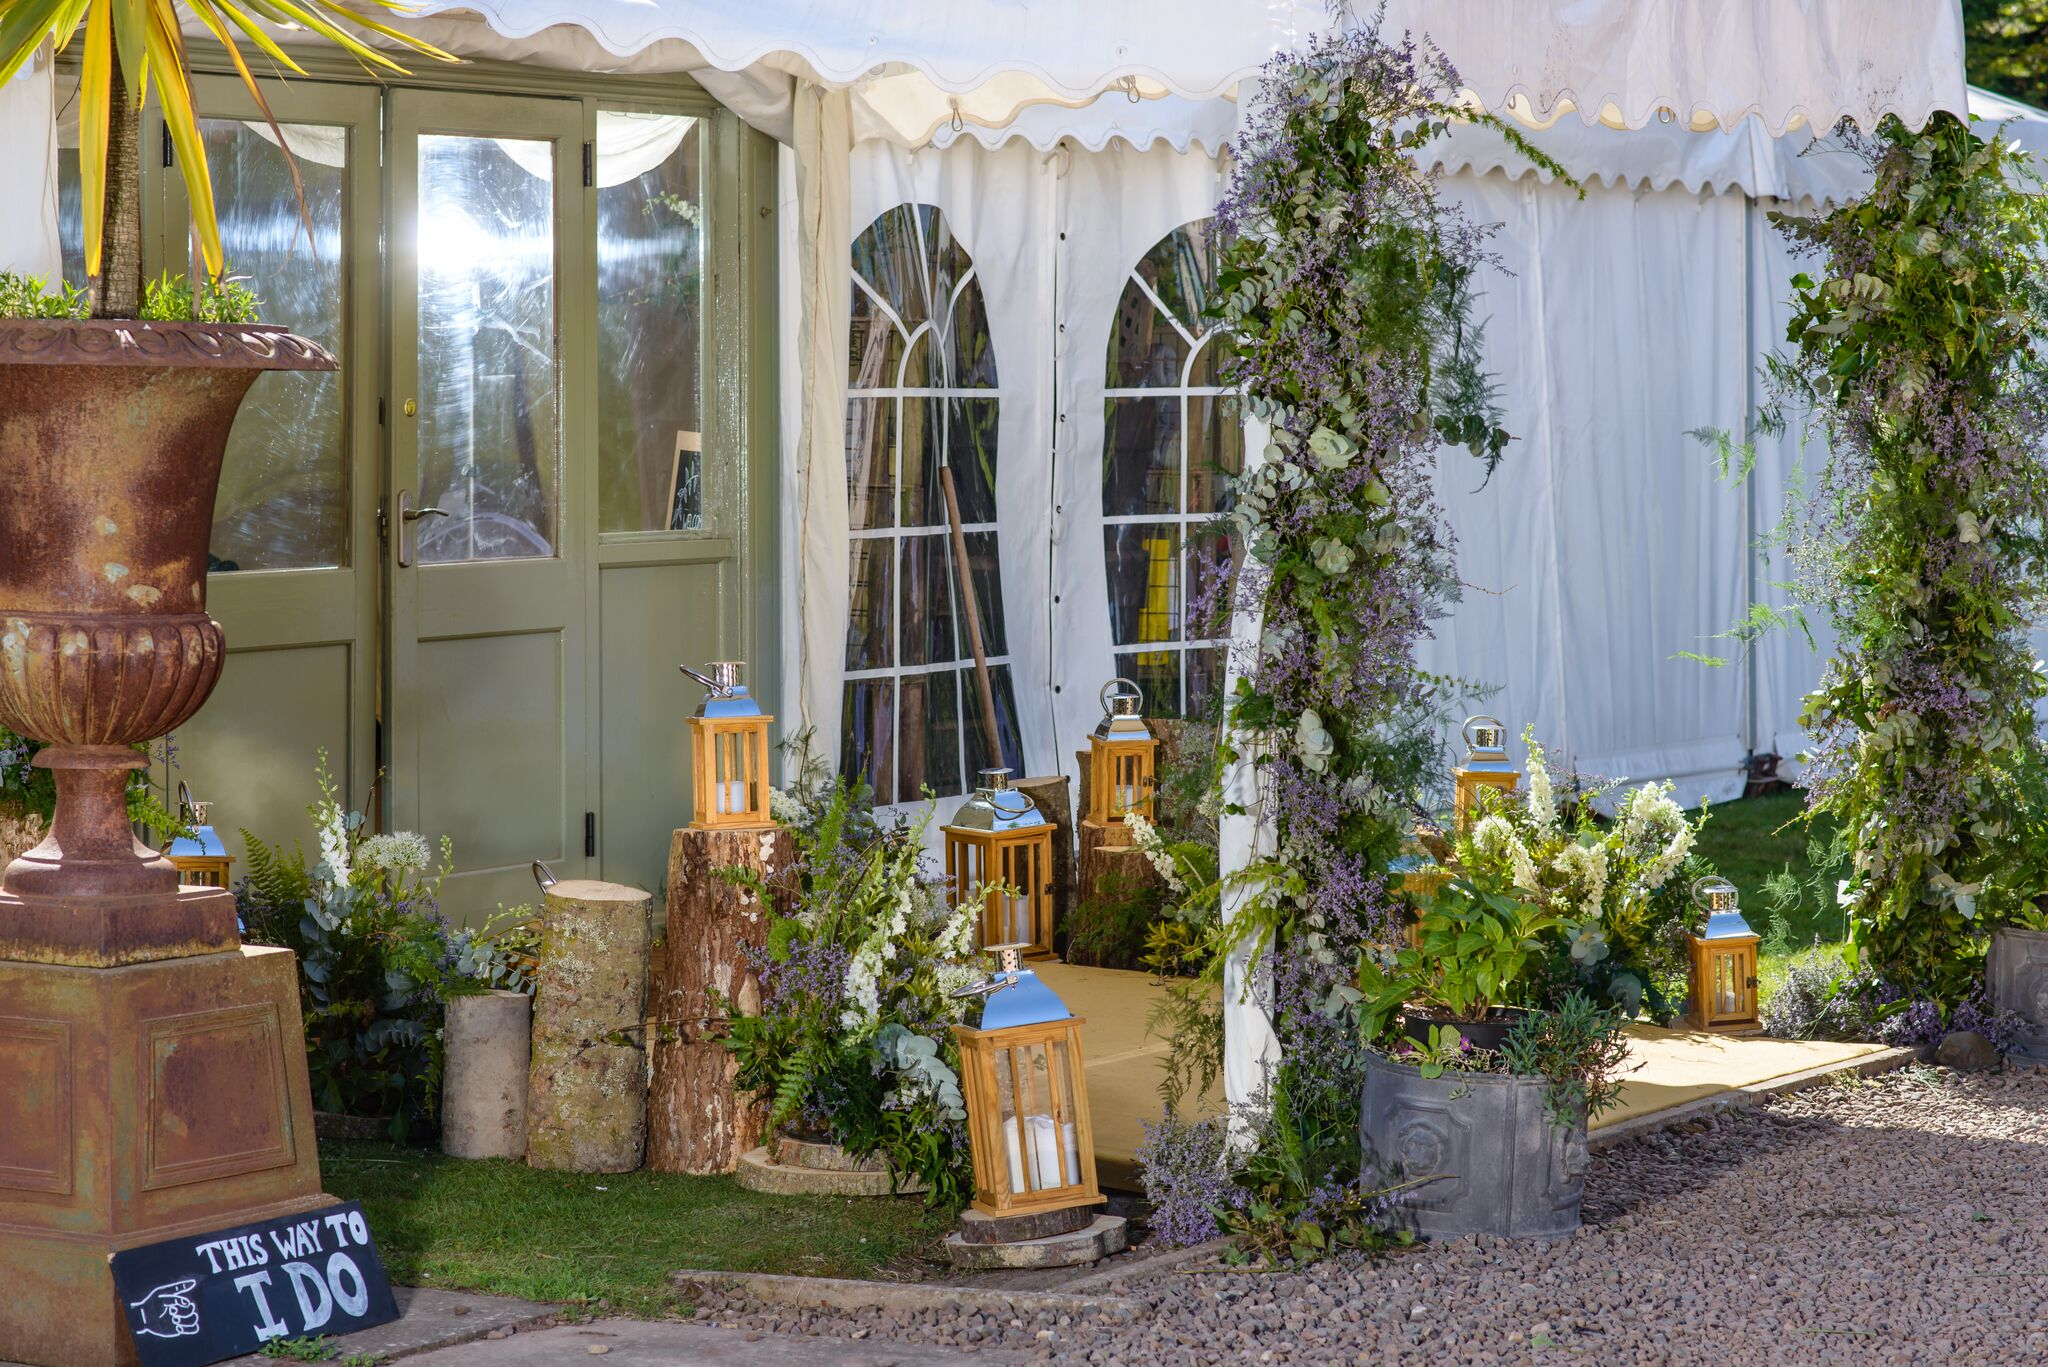 Get-Knotted.net Wedding at Broxmouth Park - Marquee entrance (image credit - kevingreenfield.com) £POA (4)